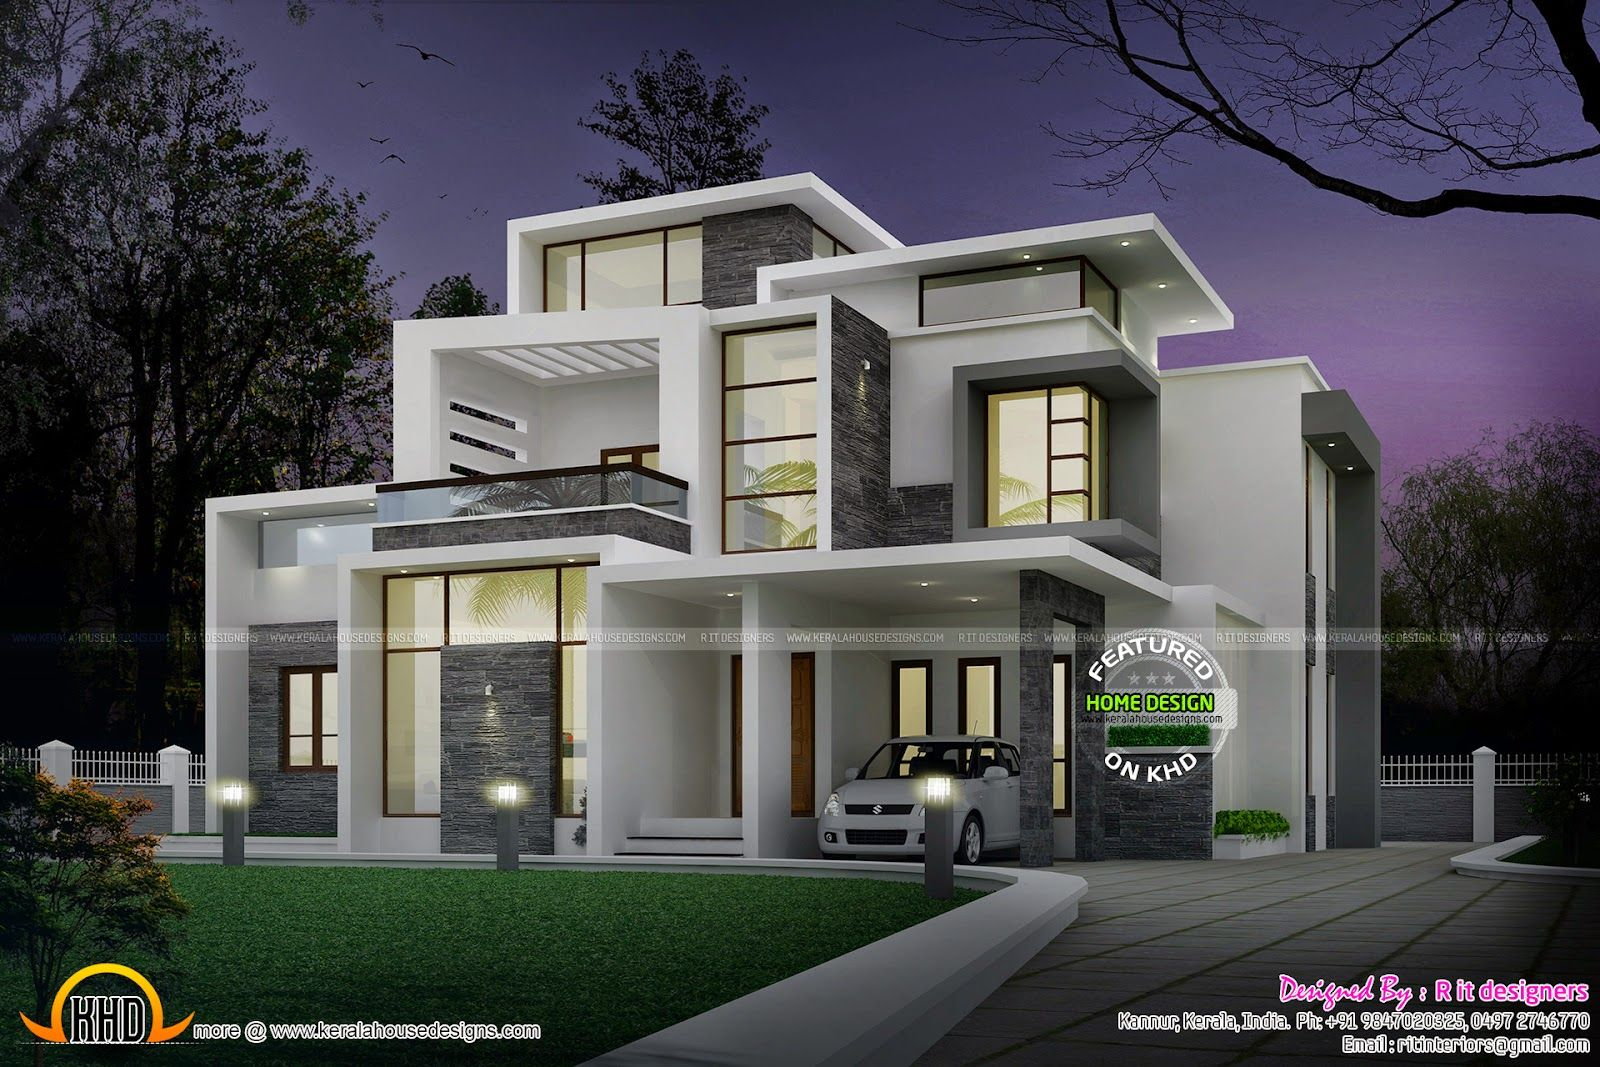 Grand contemporary home design kerala home design and for Contemporary architecture houses